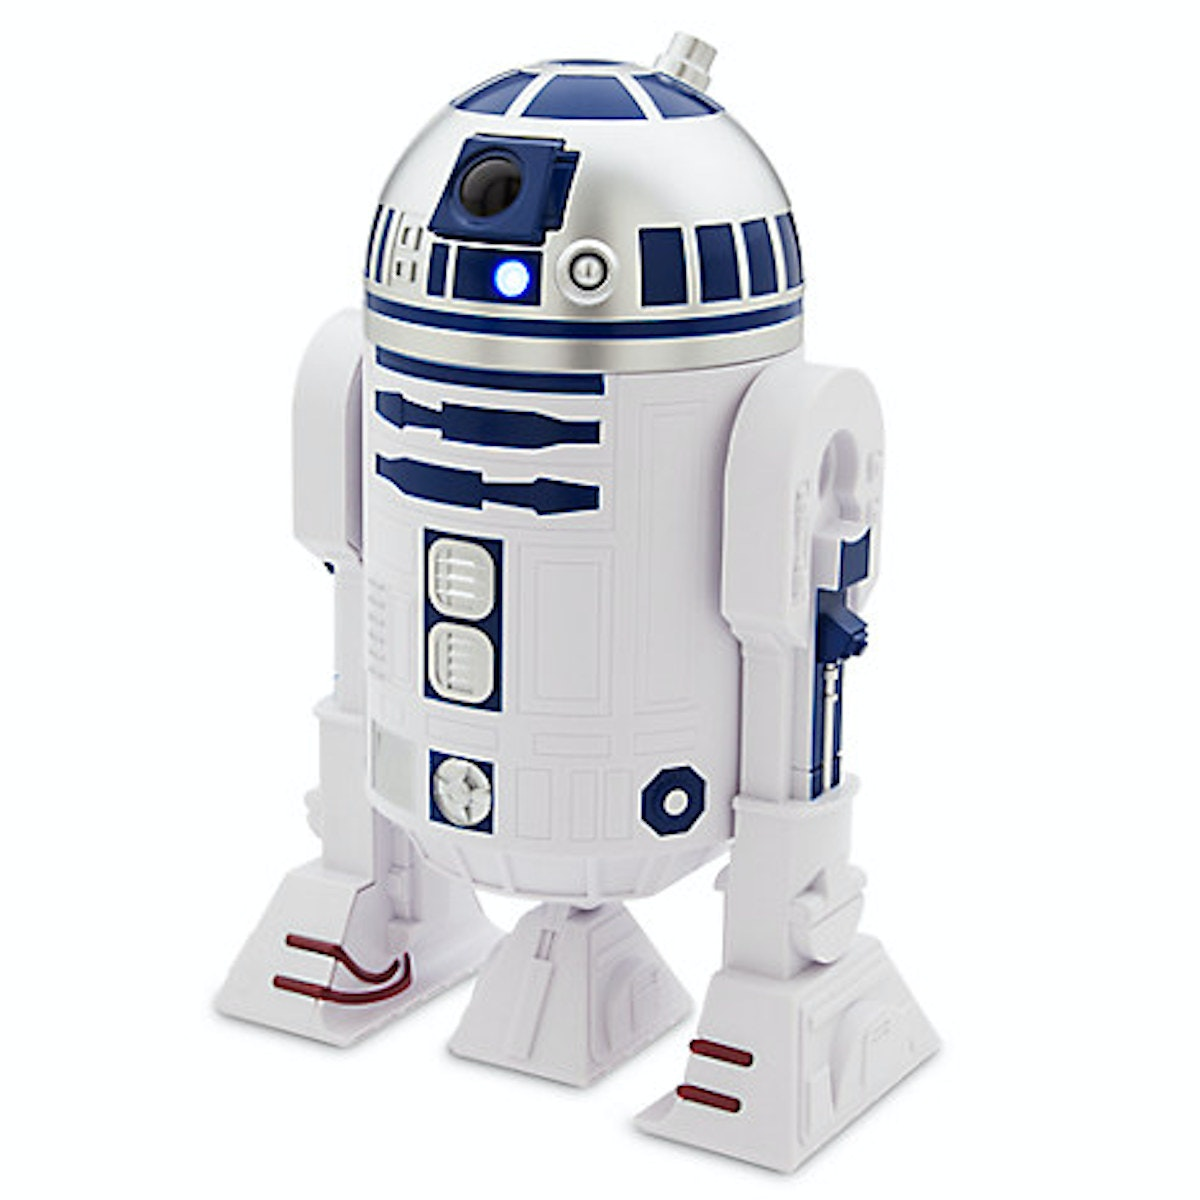 This sweet R2-D2 cookie jar